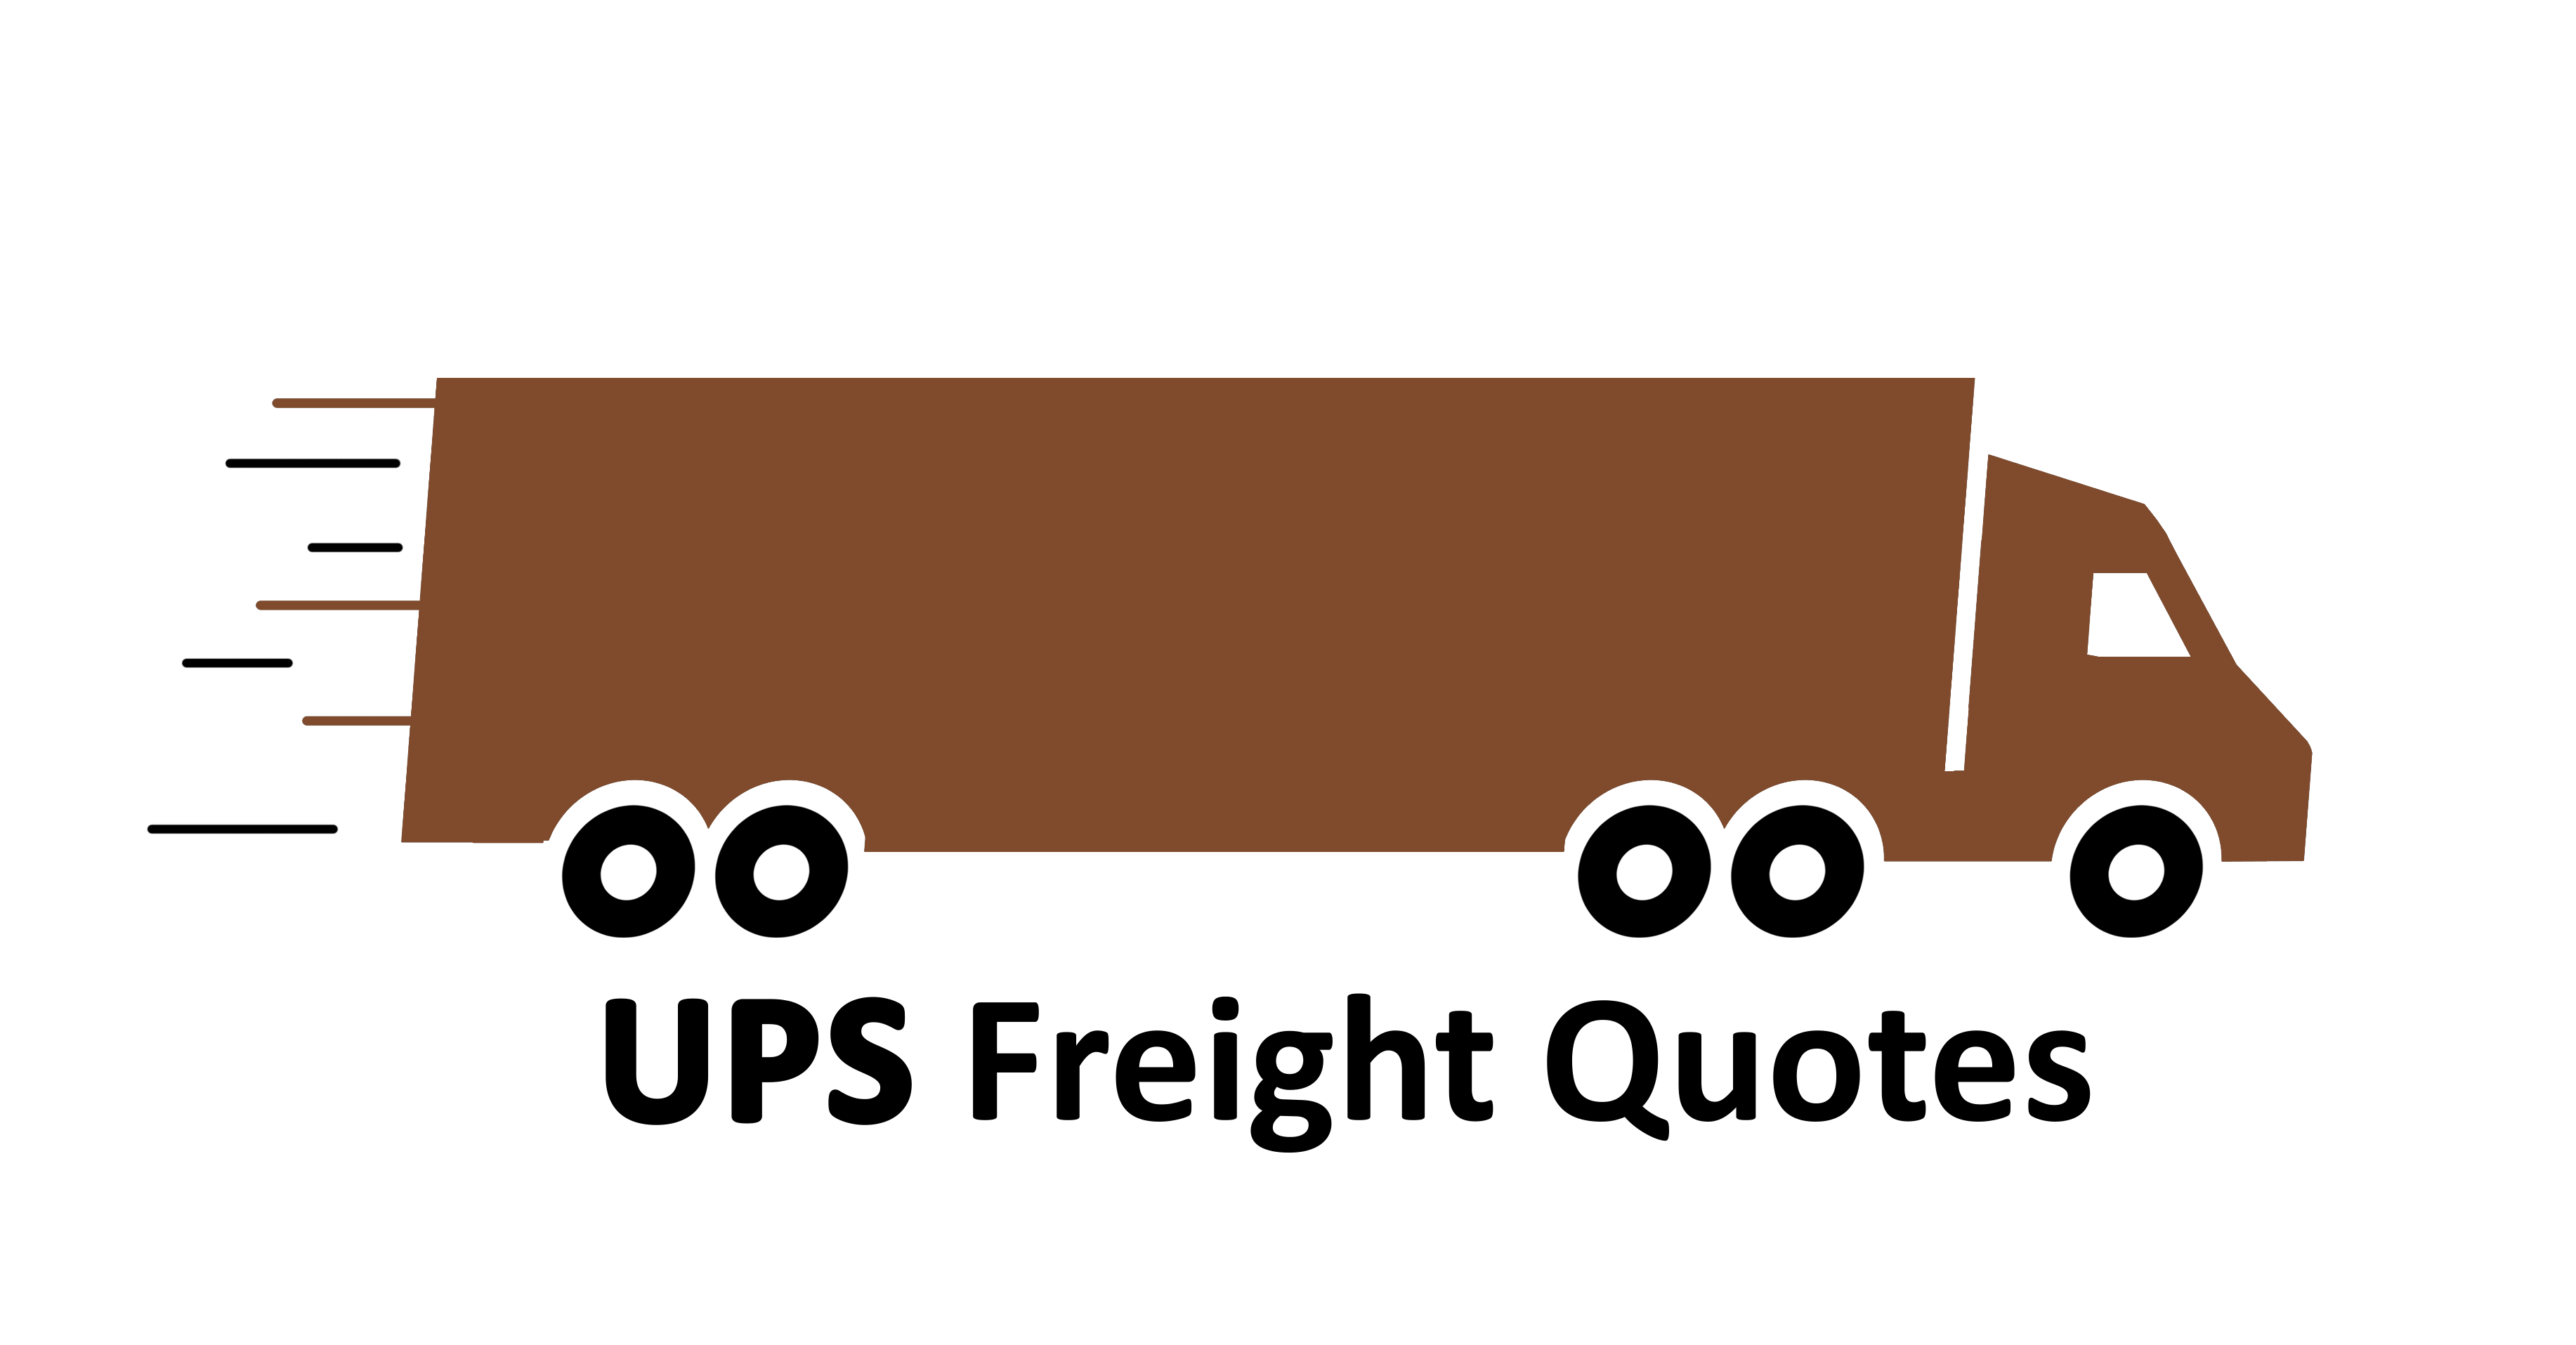 UPS Freight Rates Brown